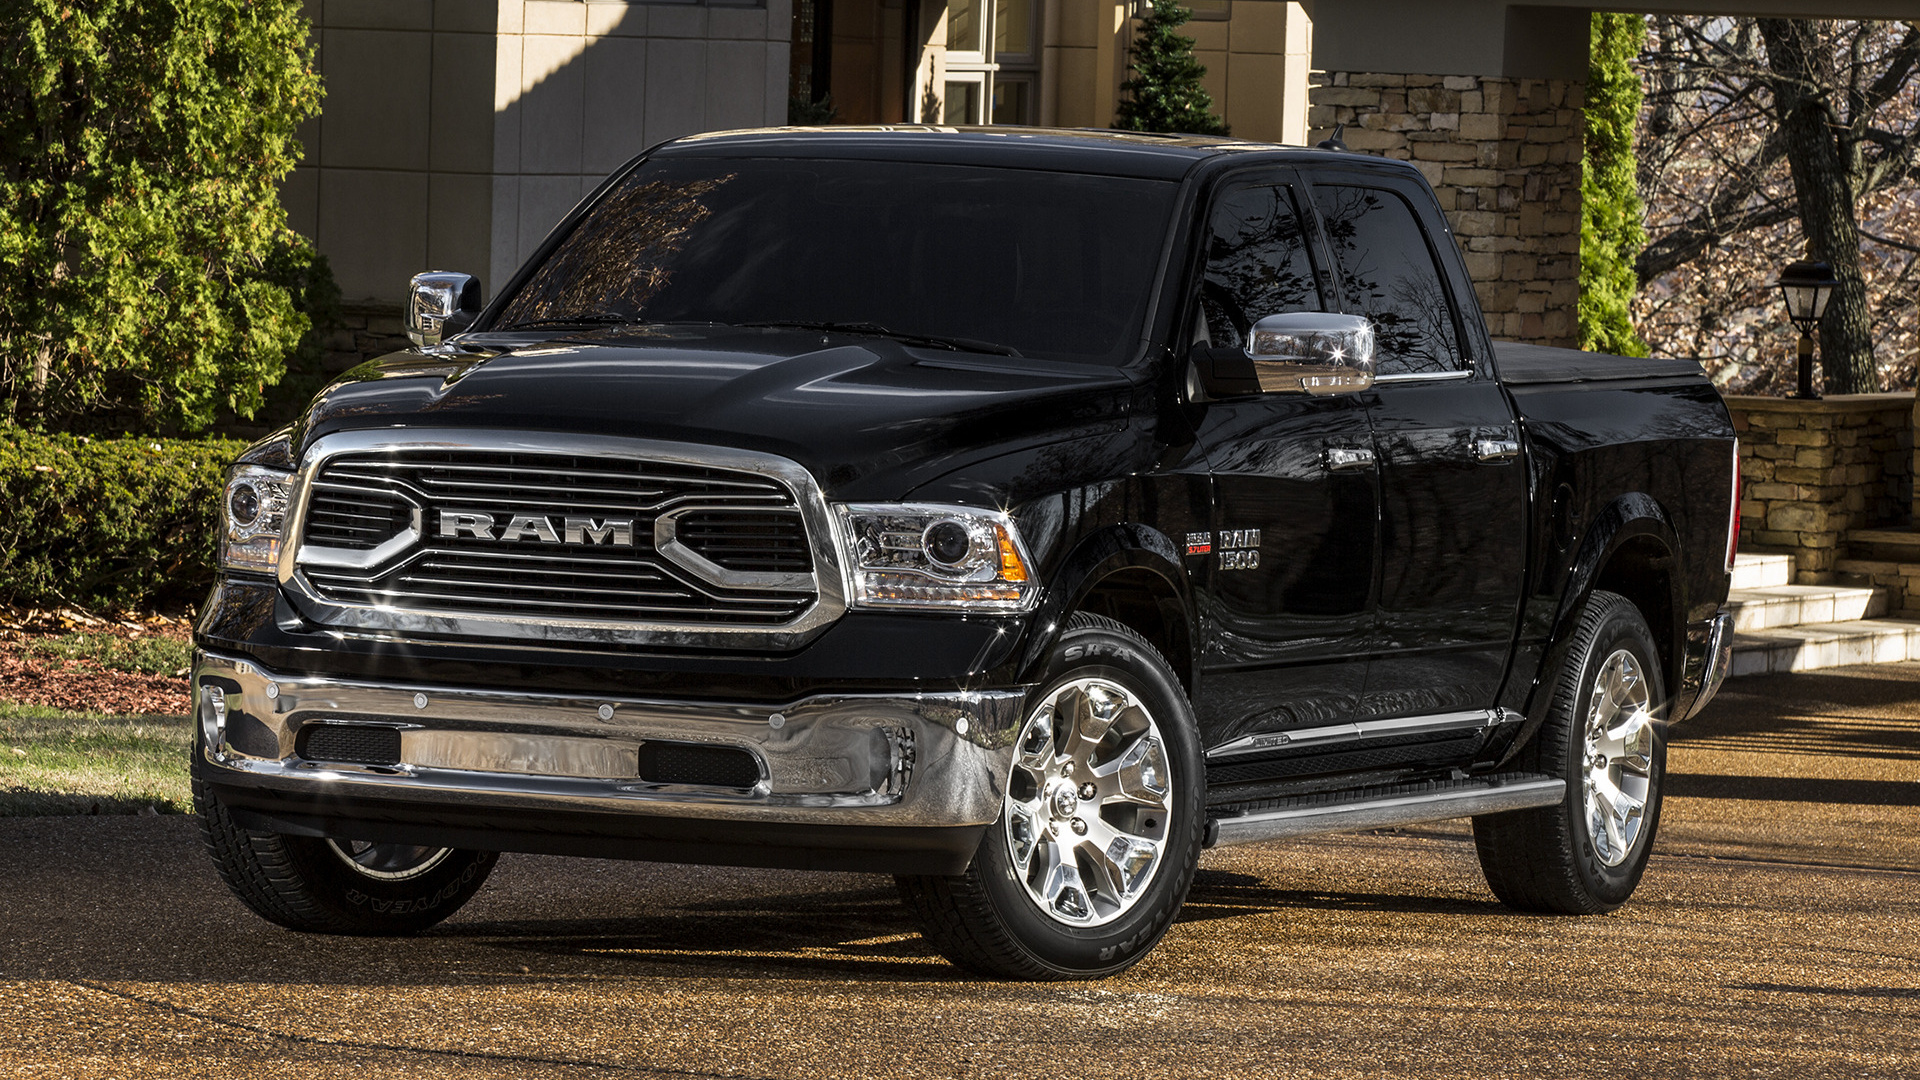 Dodge Crew Cab >> 2015 Ram 1500 Laramie Limited Crew Cab - Wallpapers and HD ...